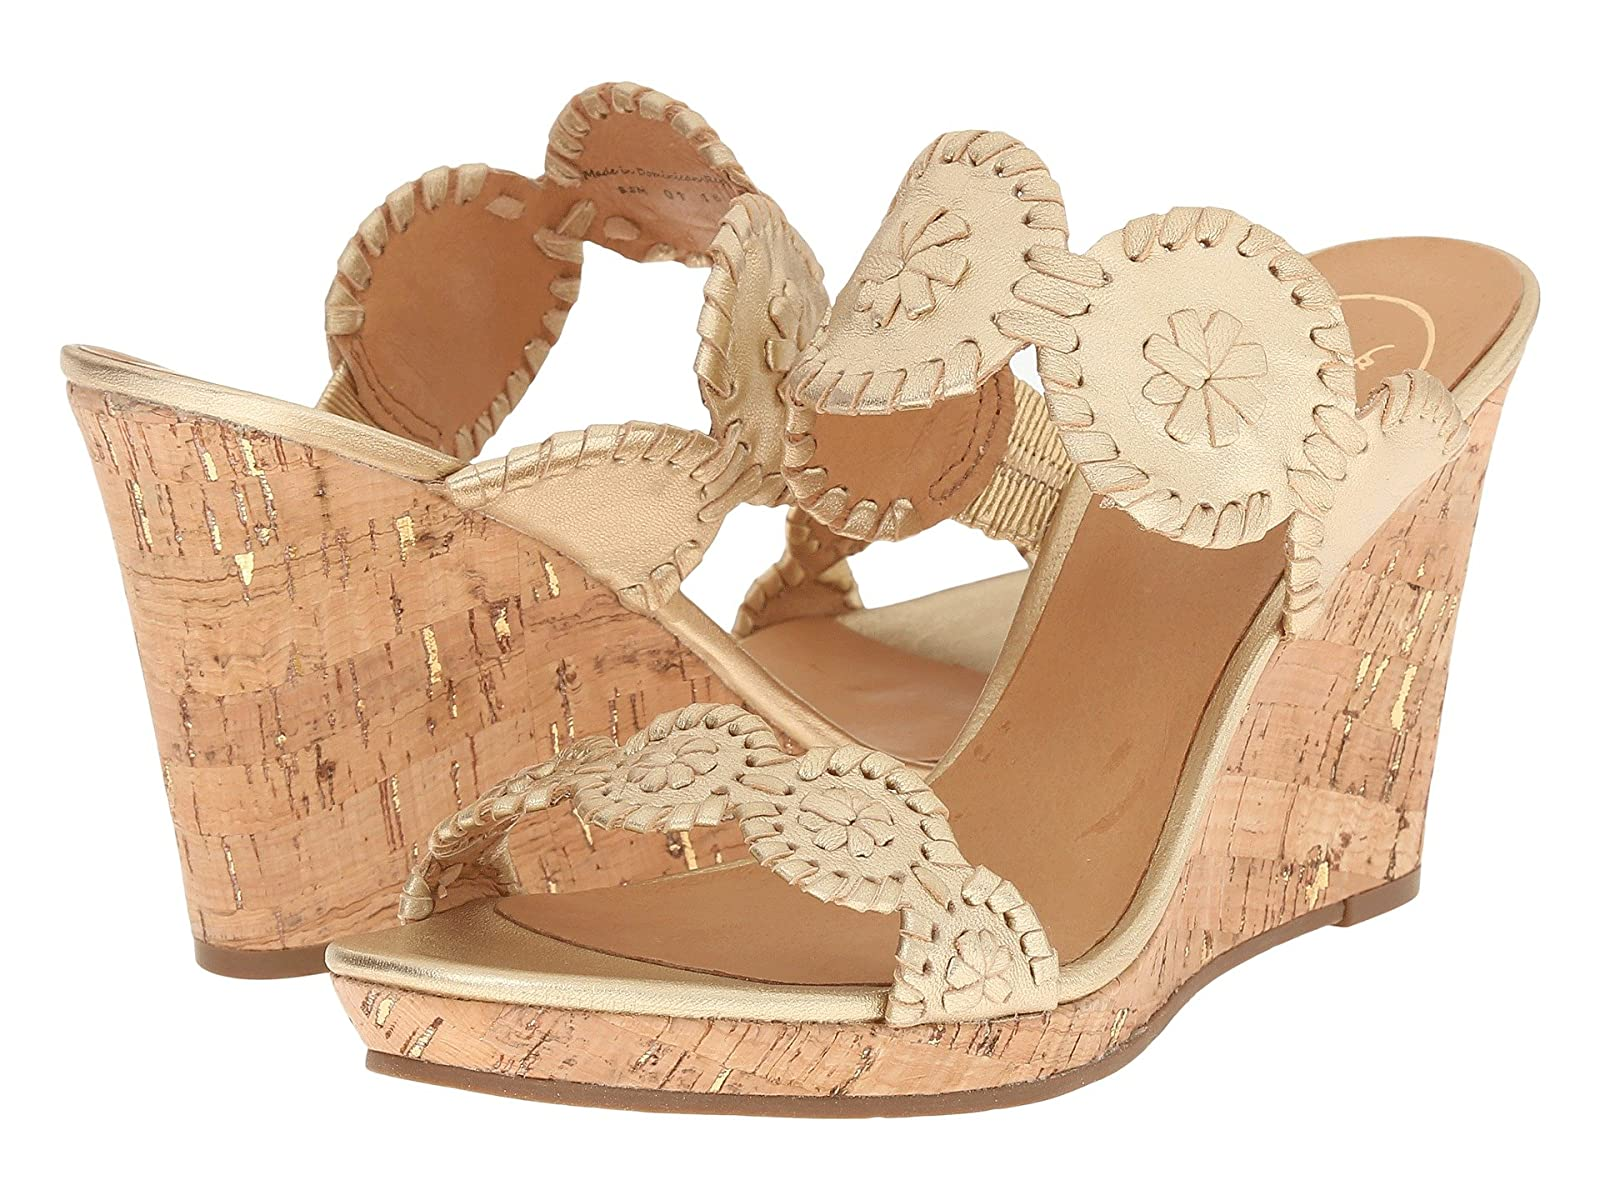 Jack Rogers LucciaCheap and distinctive eye-catching shoes